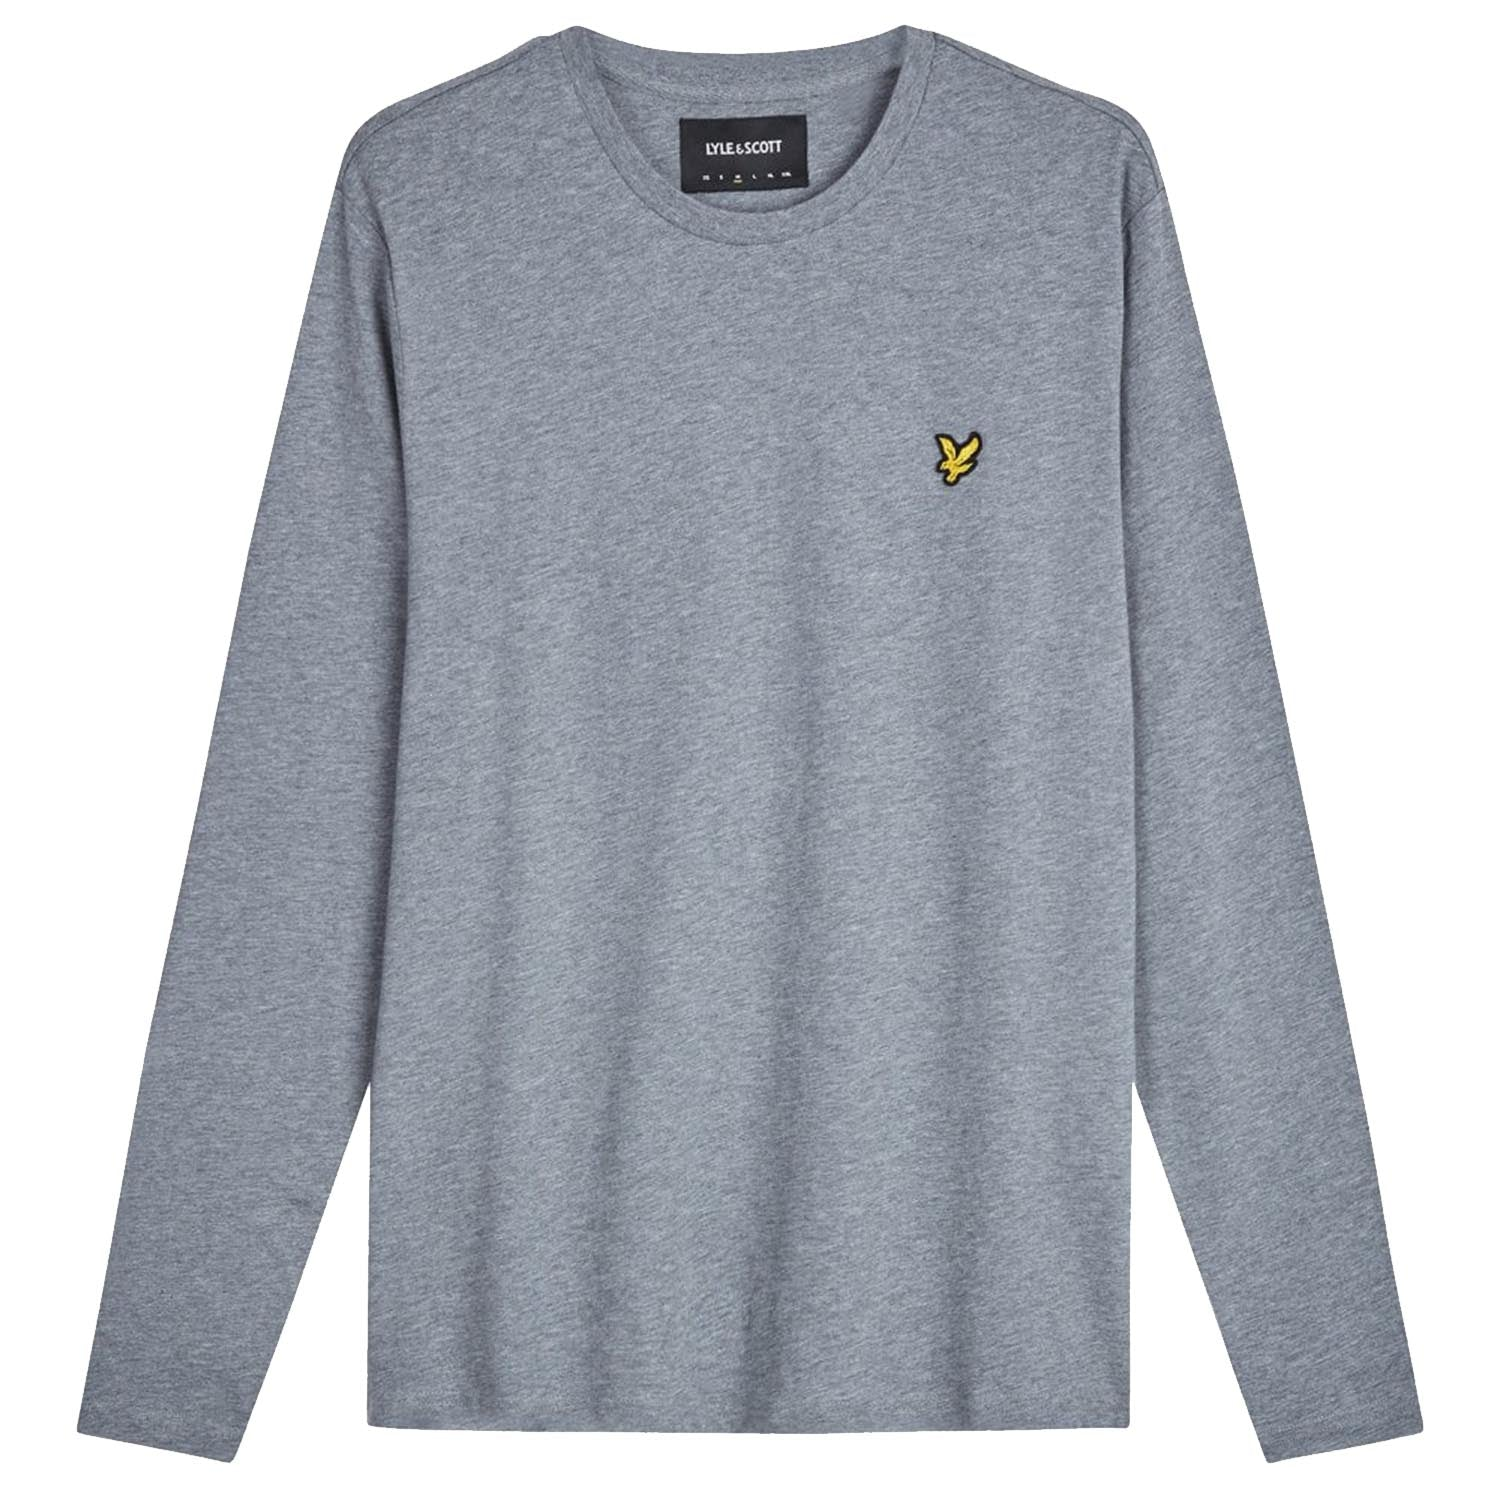 Lyle & Scott Embroidered Logo Long Sleeve T-Shirt